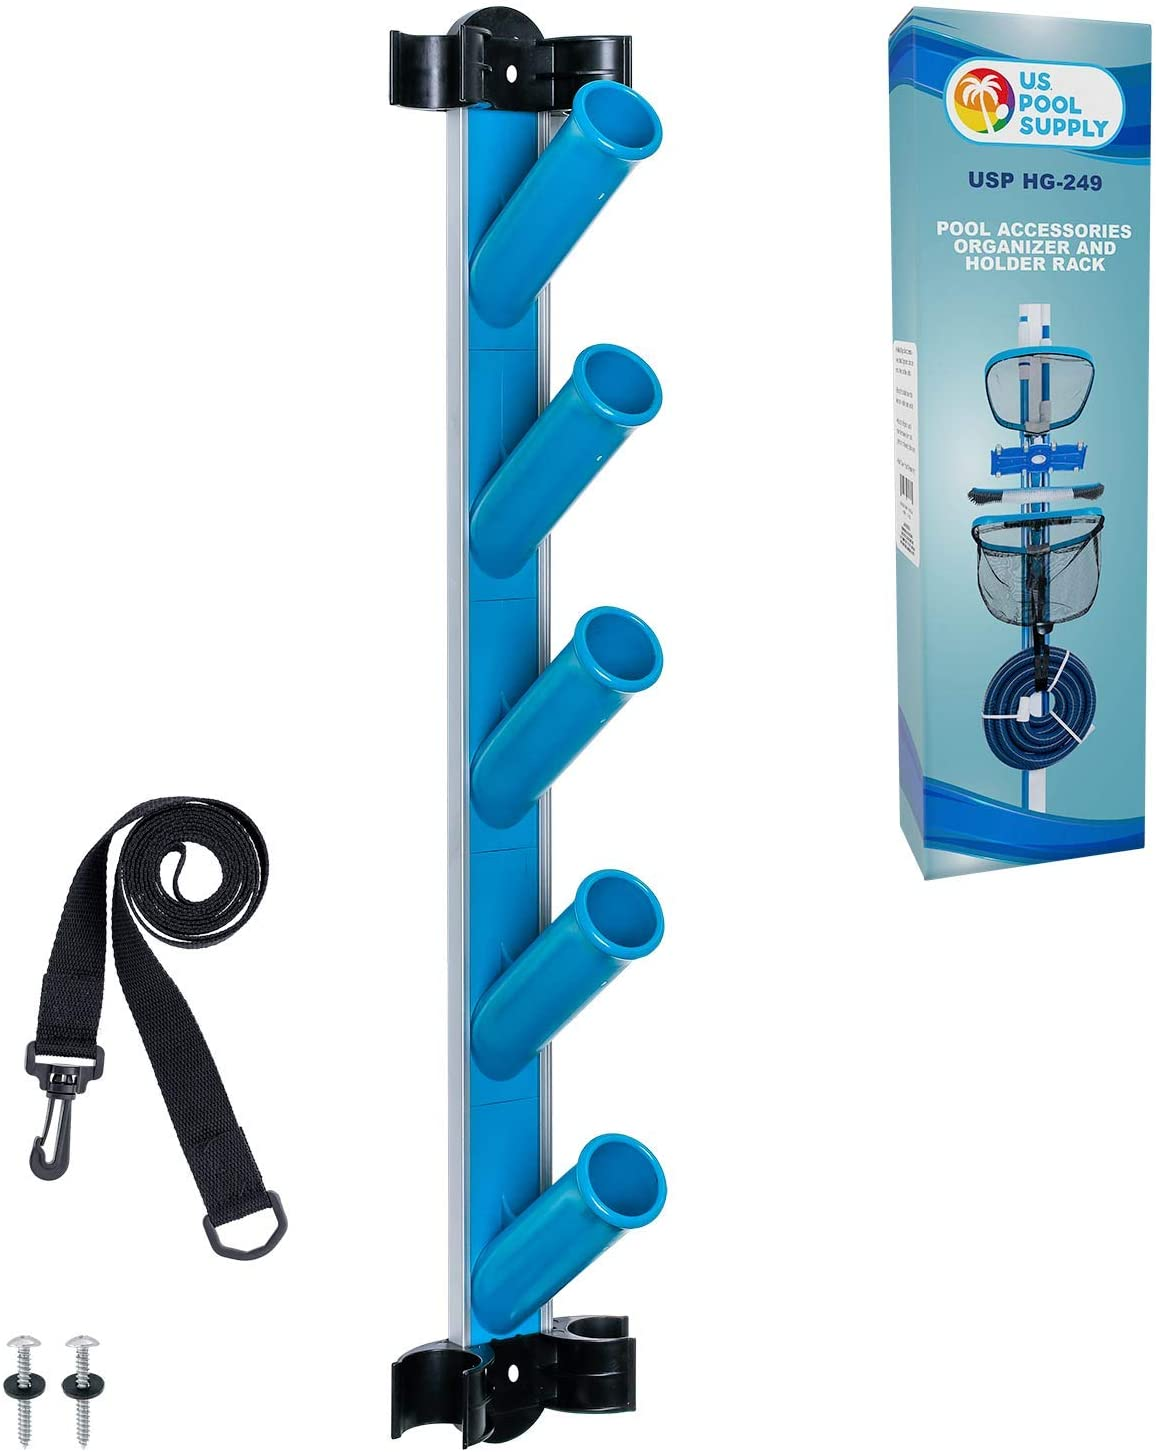 U.S. Pool Supply Pool Cleaning Accessory Organizer and Holder Rack